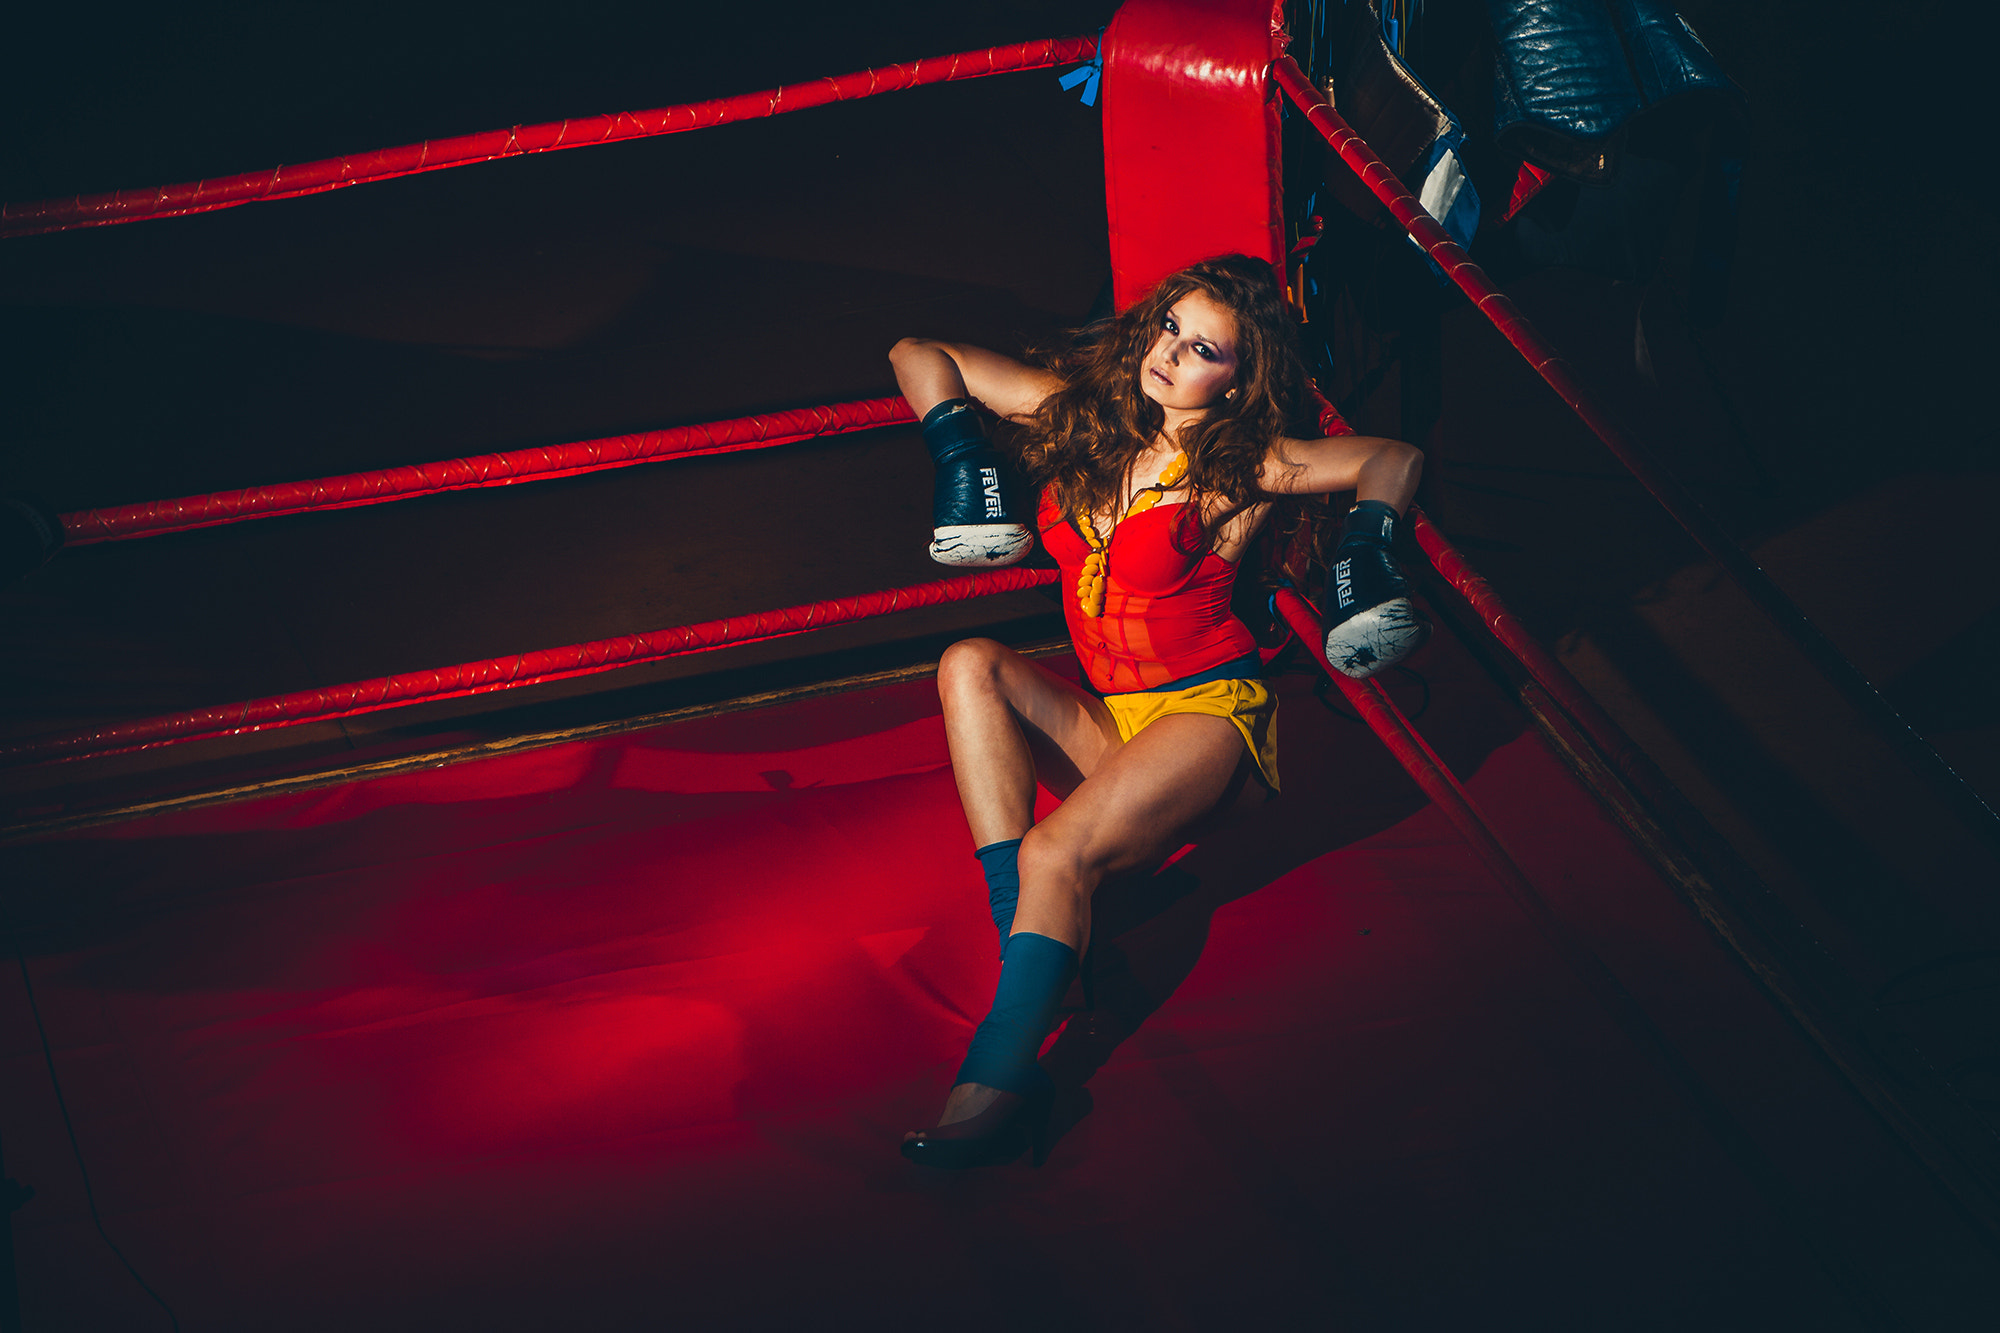 Photograph boxing 1 by Ivan Kuntsevich on 500px